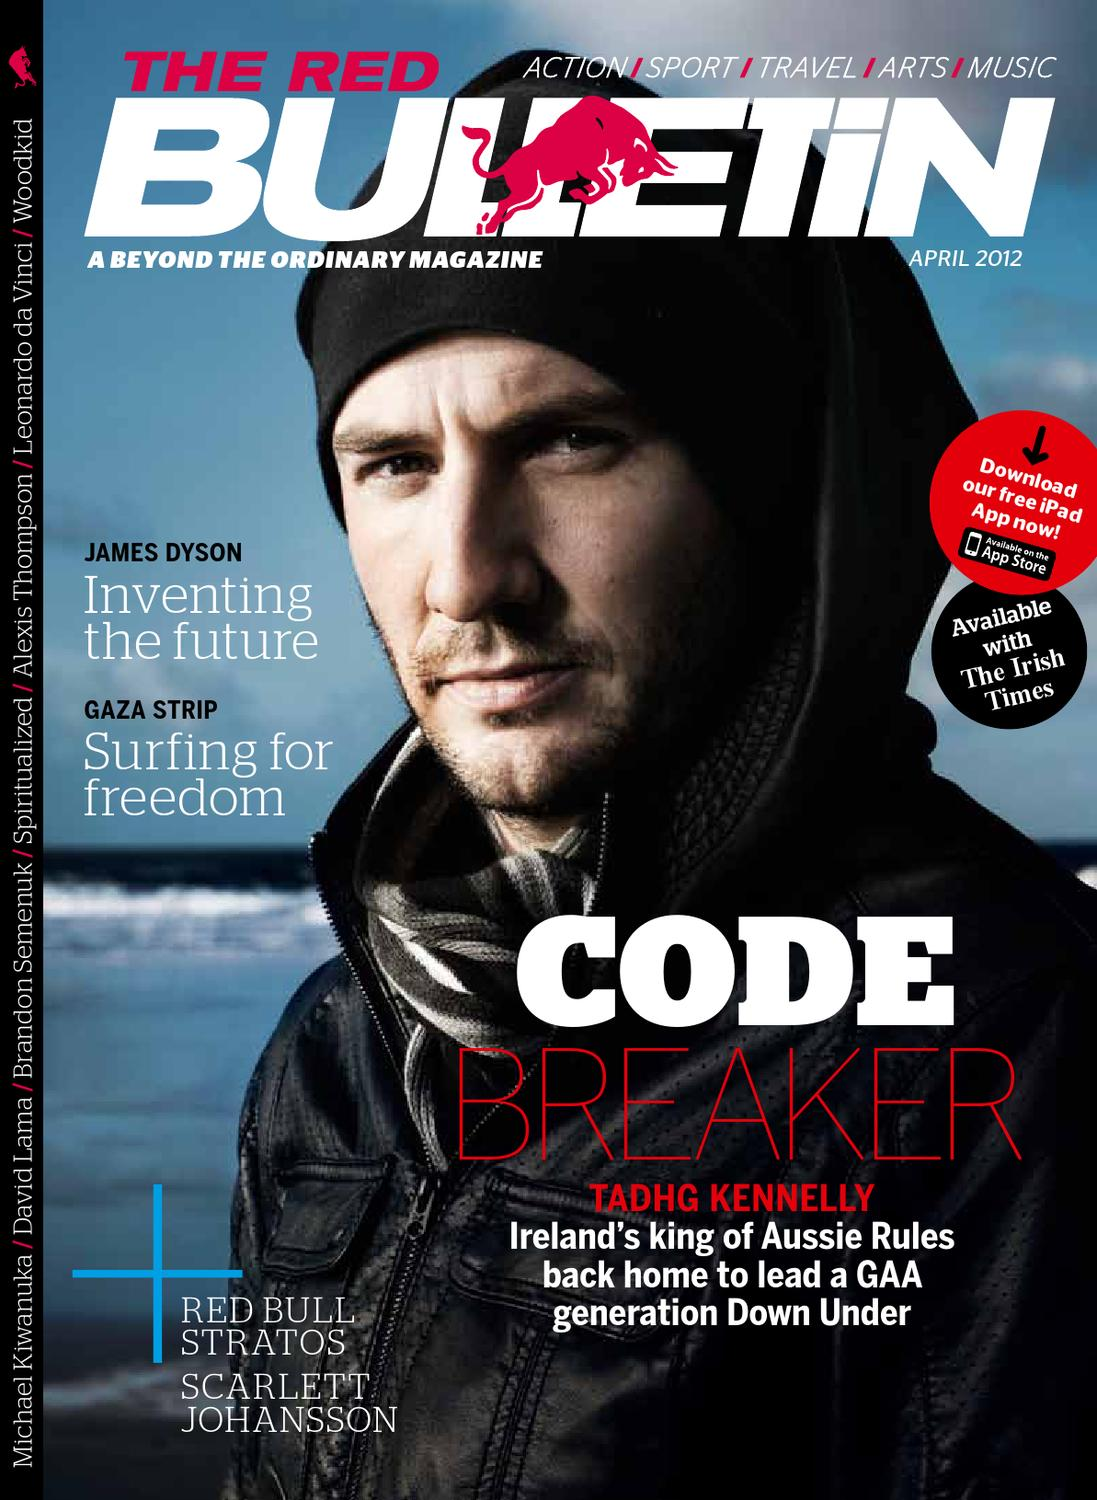 6dce7dbcdbd2 The Red Bulletin 1204 IRL by Red Bull Media House - issuu